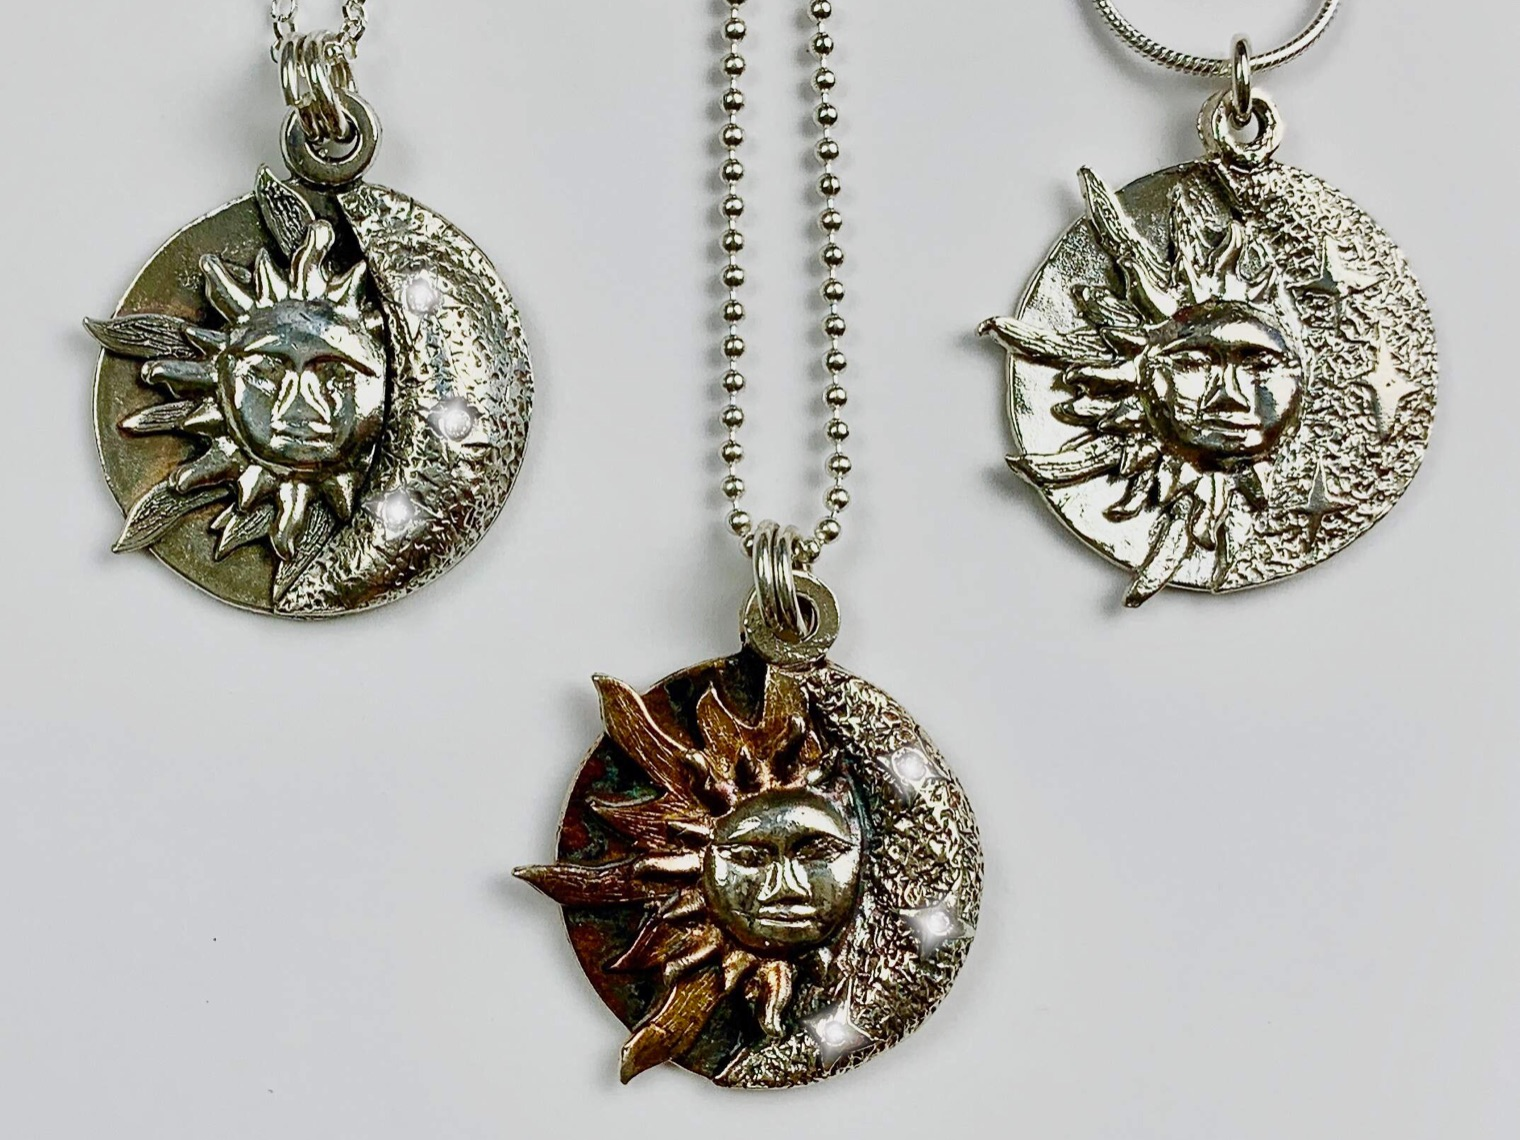 Celestial Pendant by Tracey Spurgin of Craftworx Jewellery Workshops